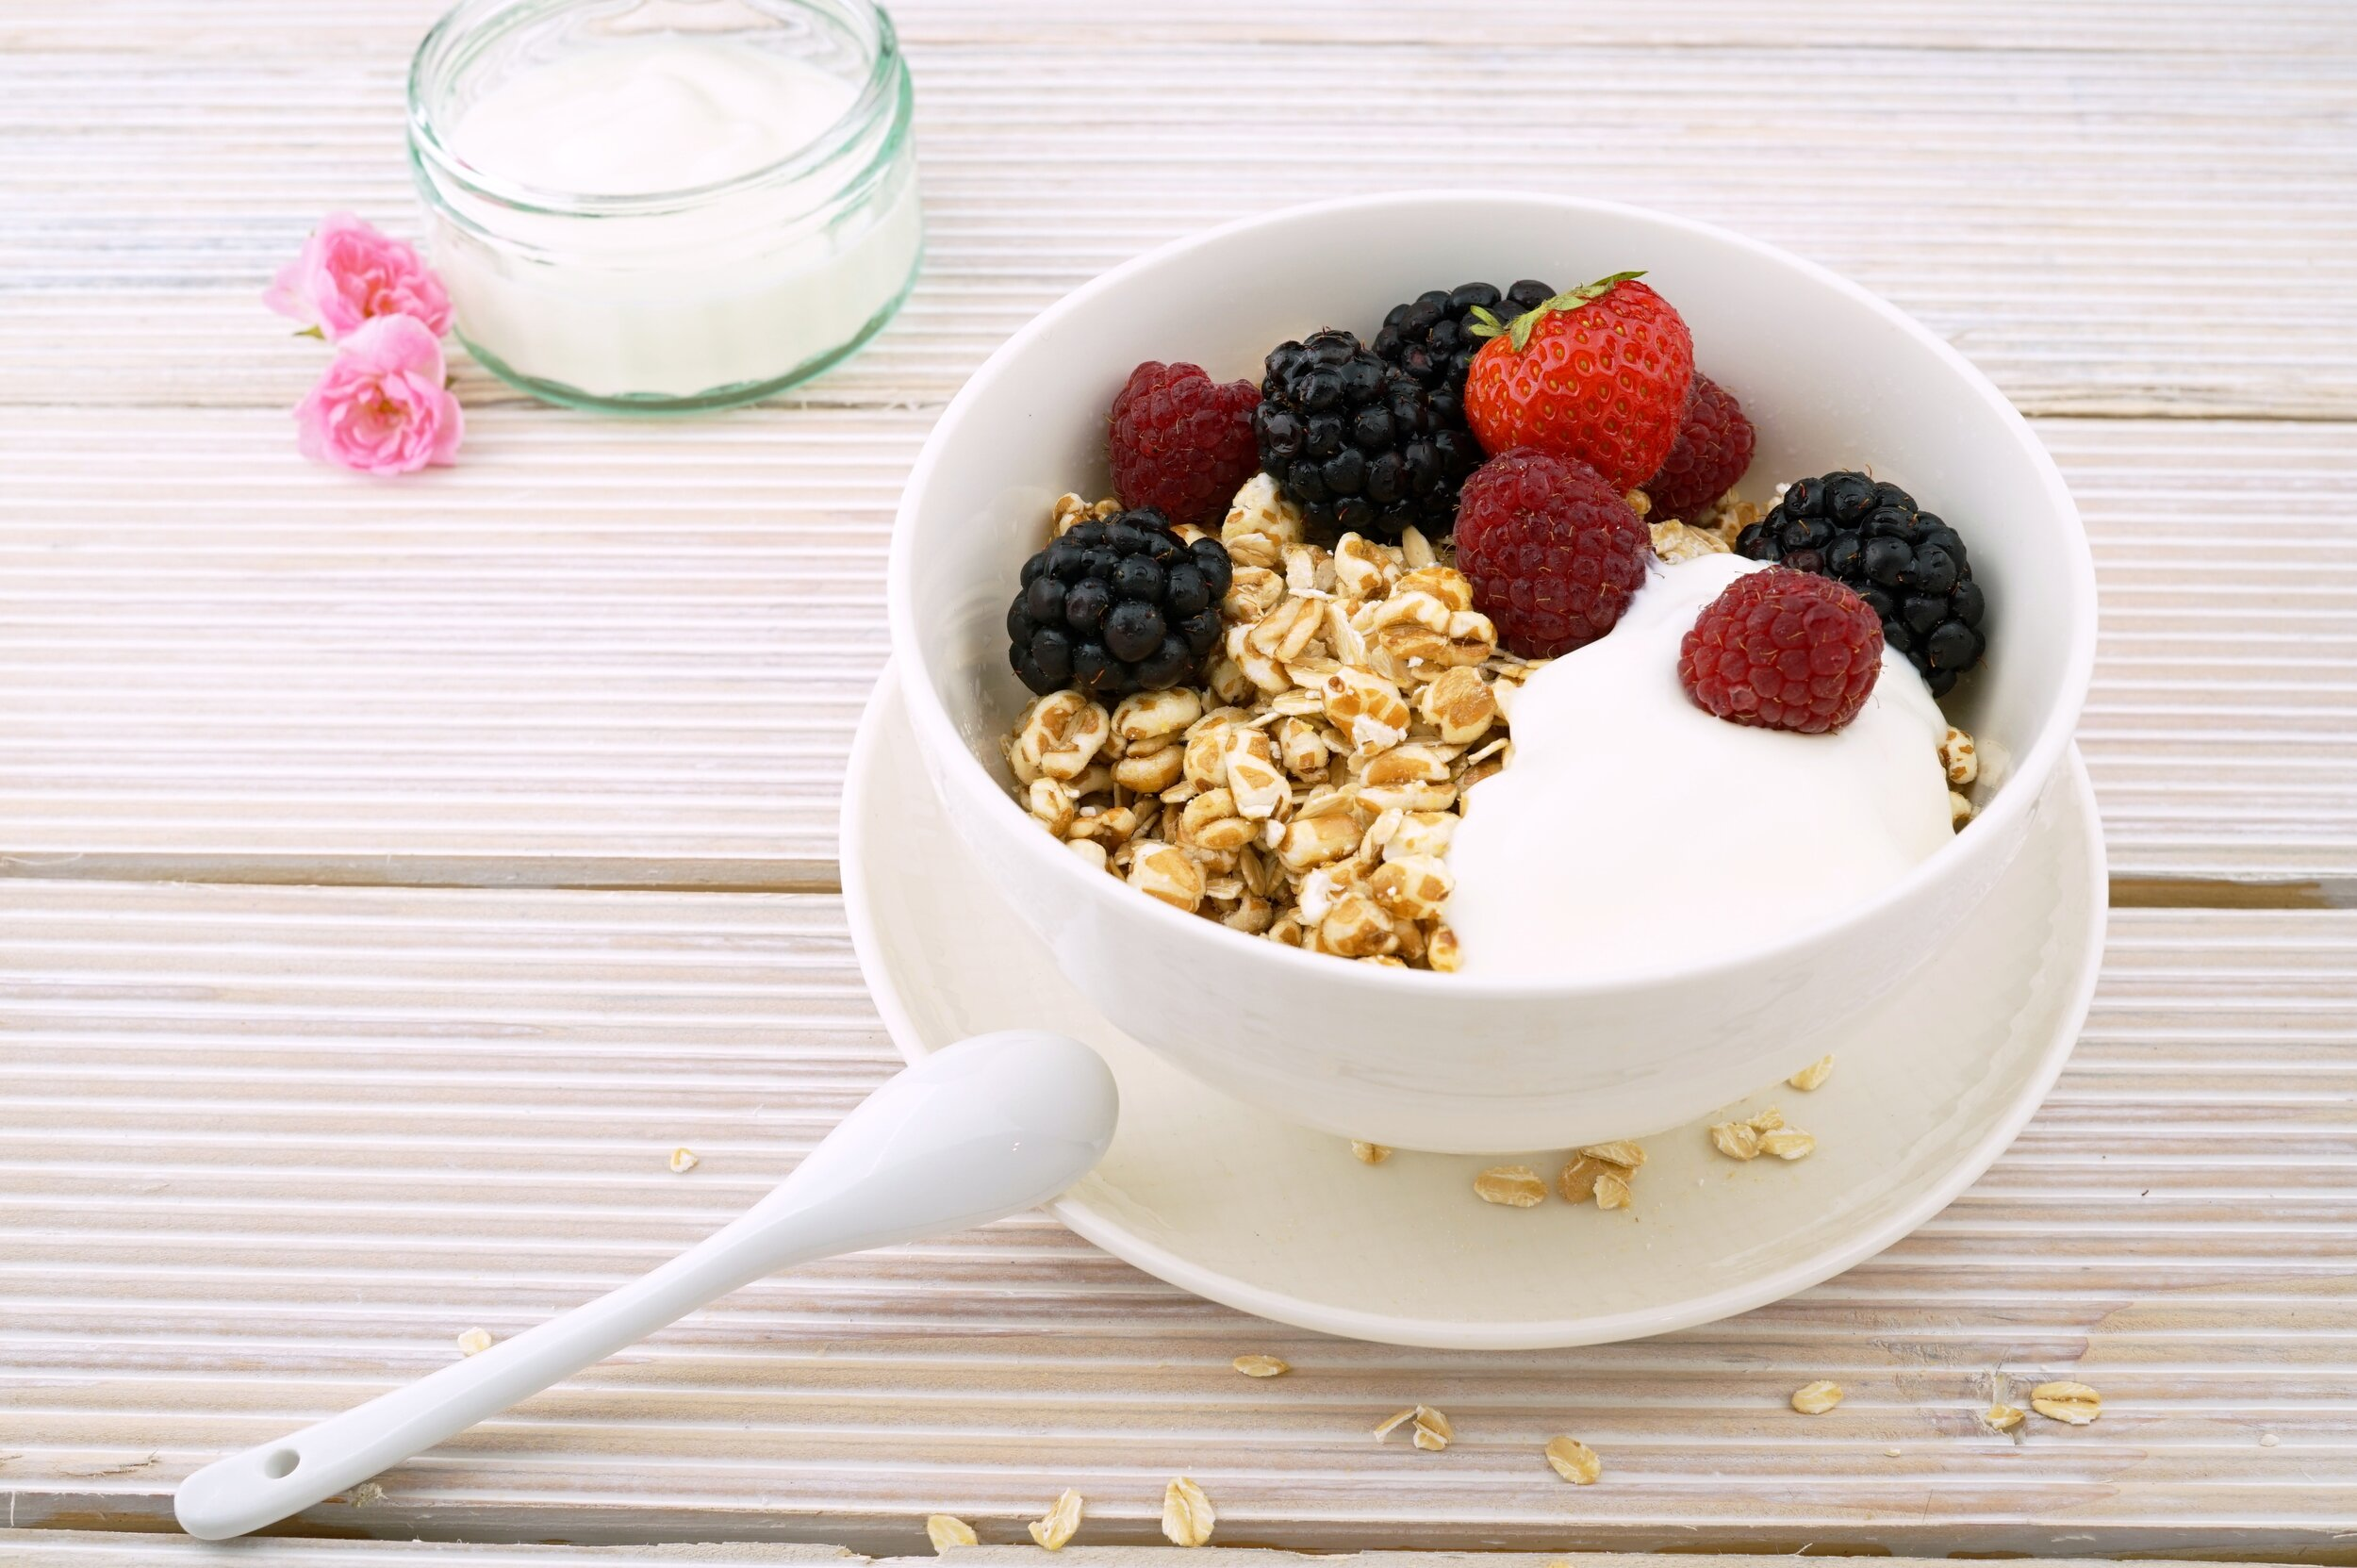 fruit-berry-sweet-bowl-dish-meal-922773-pxhere.com.jpg